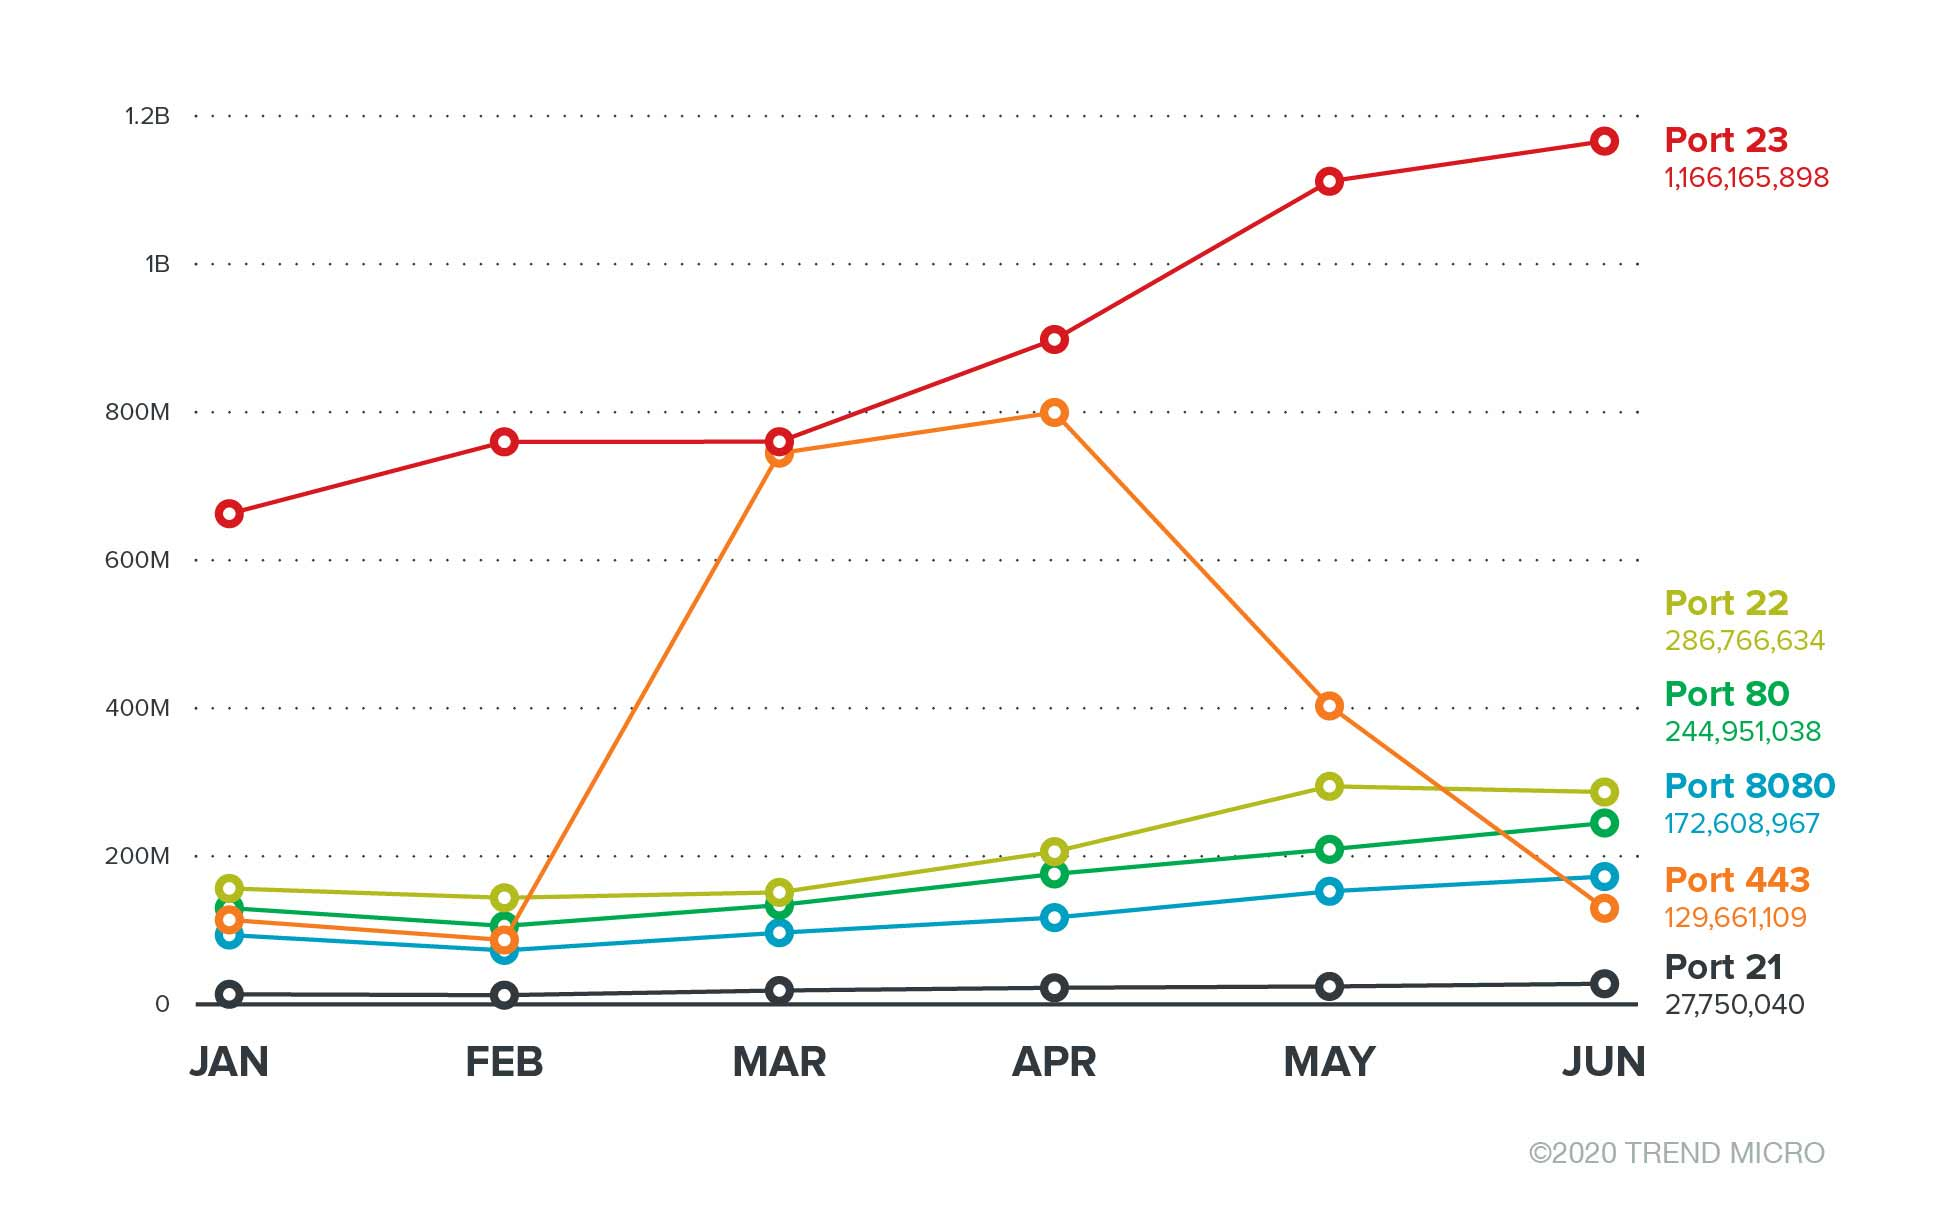 The trend in unavailable TCP port access attempts from January to June 2020